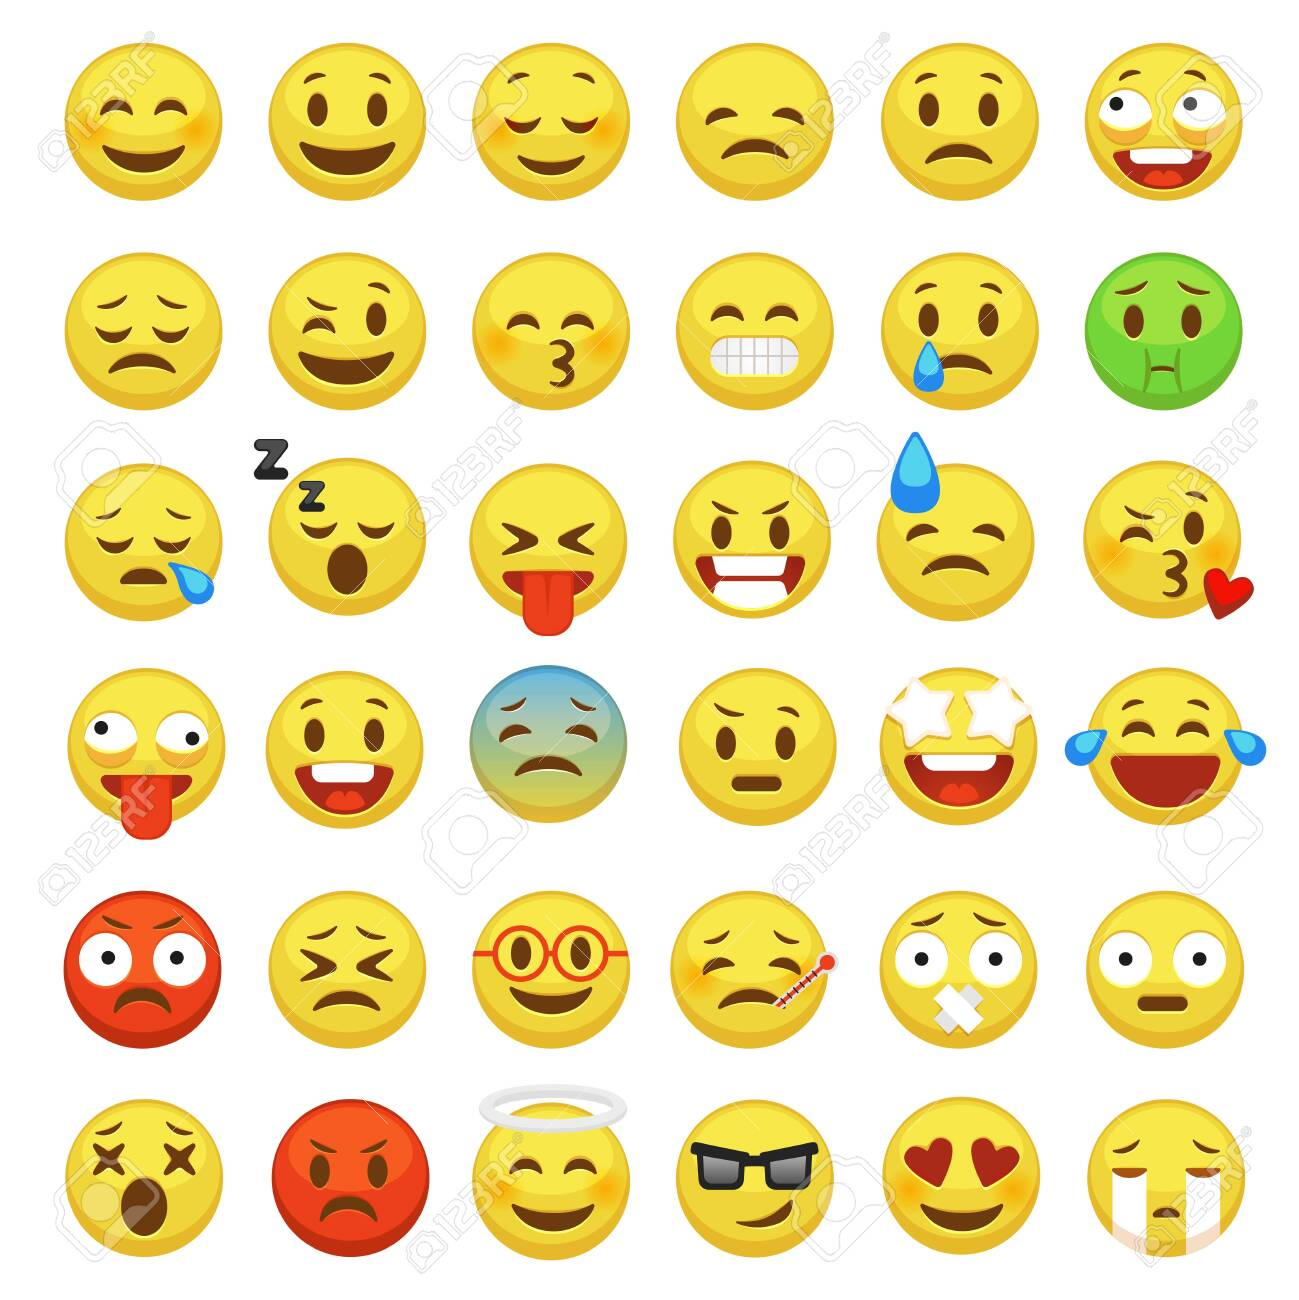 Emoji set. Emoticon face smiley character facial yellow sign message people man emotion feelings chat happy and sad emojis cartoon vector icons - 123300321